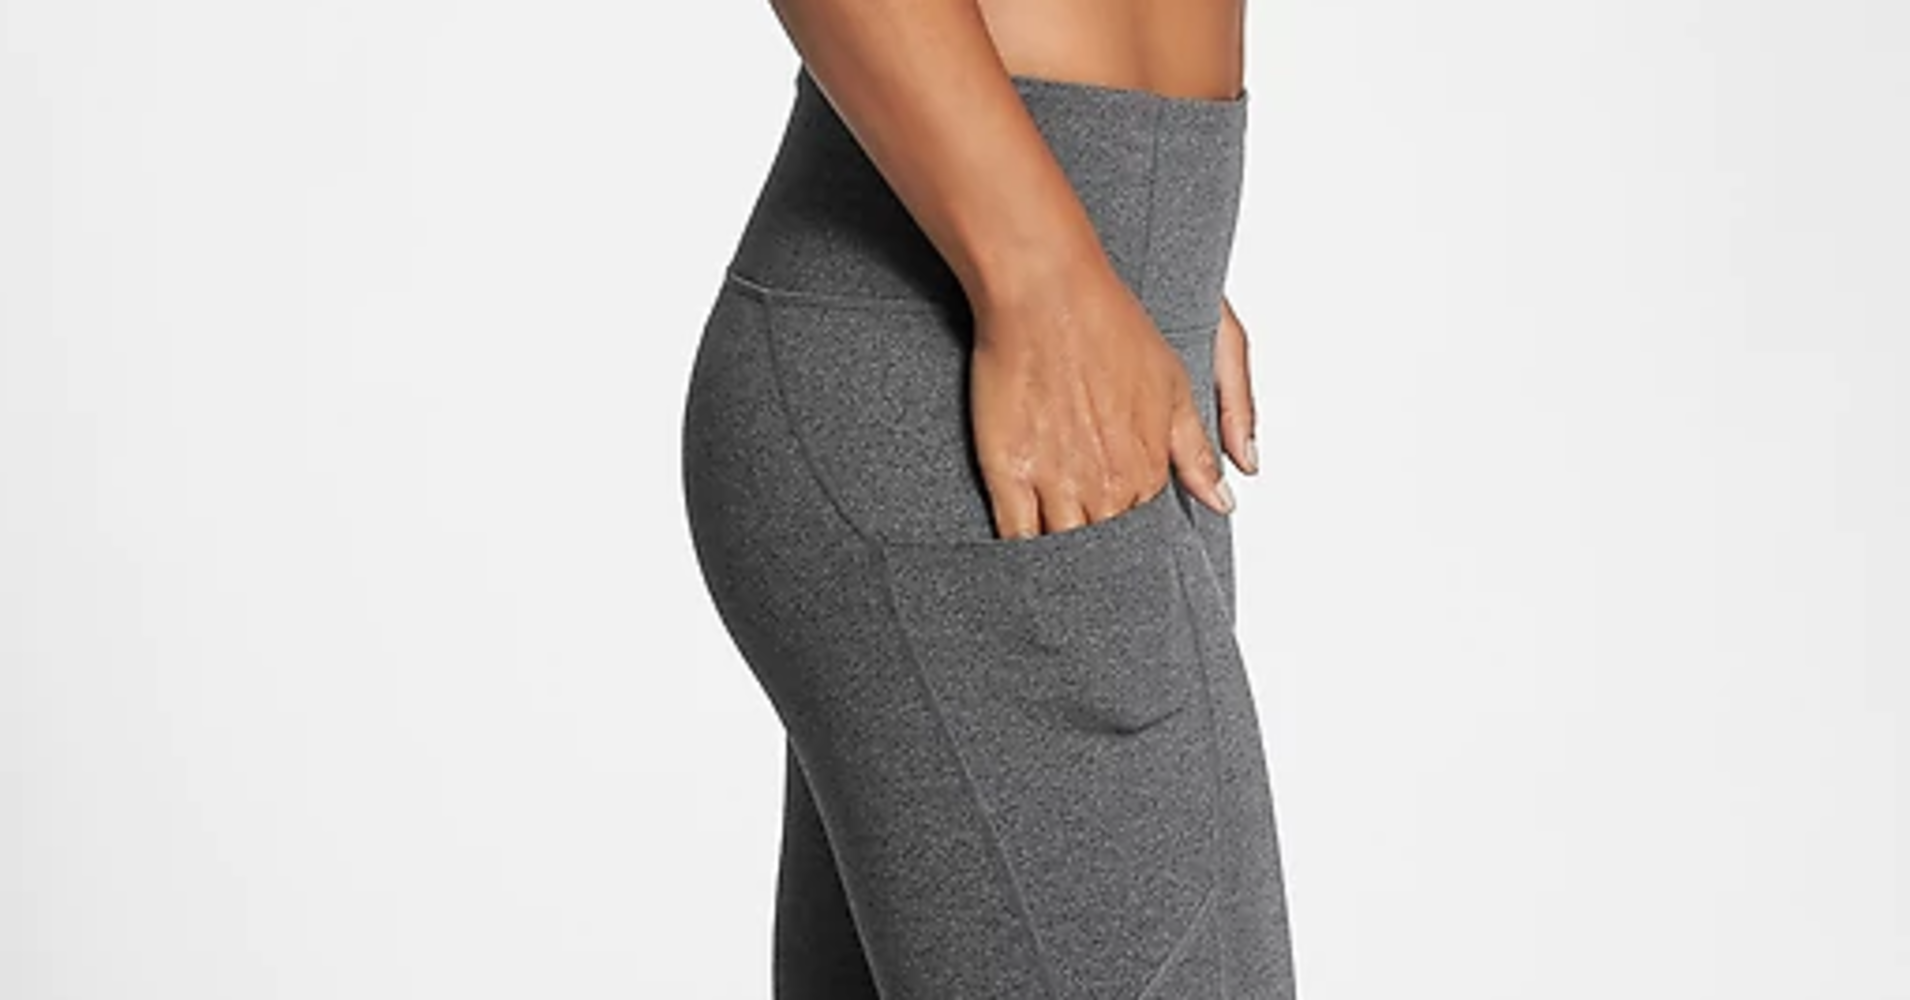 13 Yoga Pants With Pockets That'll Make Your Workout SO Much Better